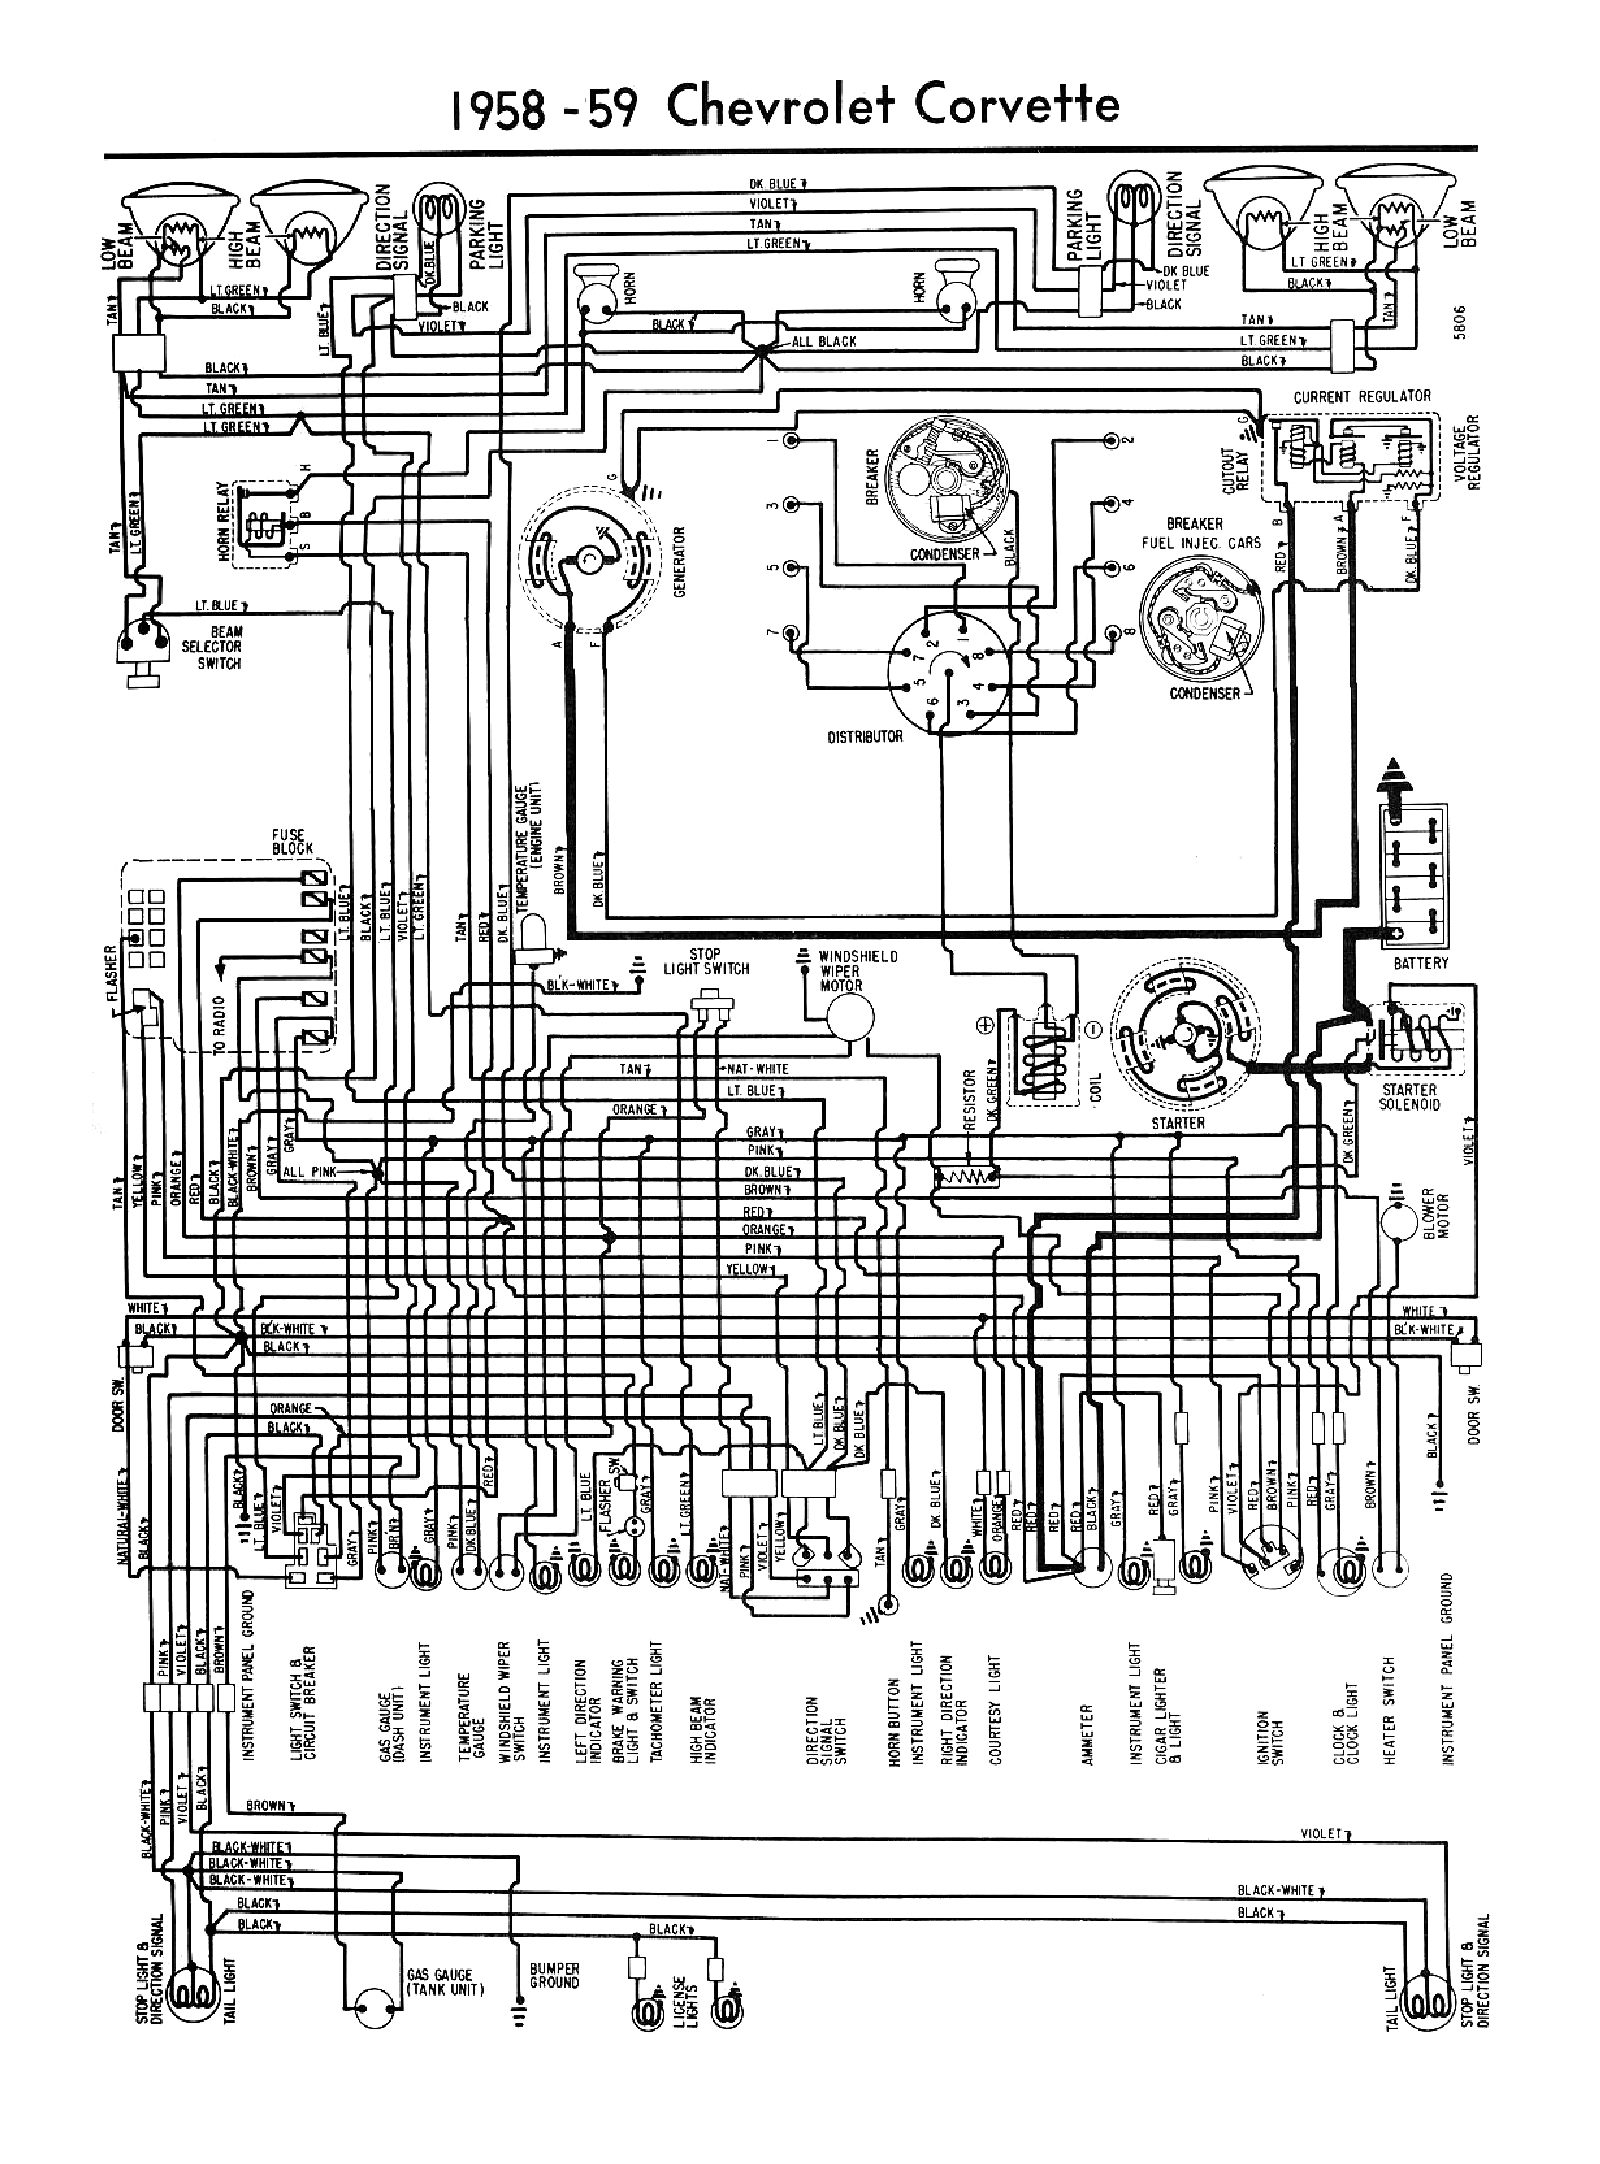 1962 C10 Wiring Diagram Pdf Archive Of Automotive 72 Caprice 1972 Chevy Truck Simple Rh David Huggett Co Uk